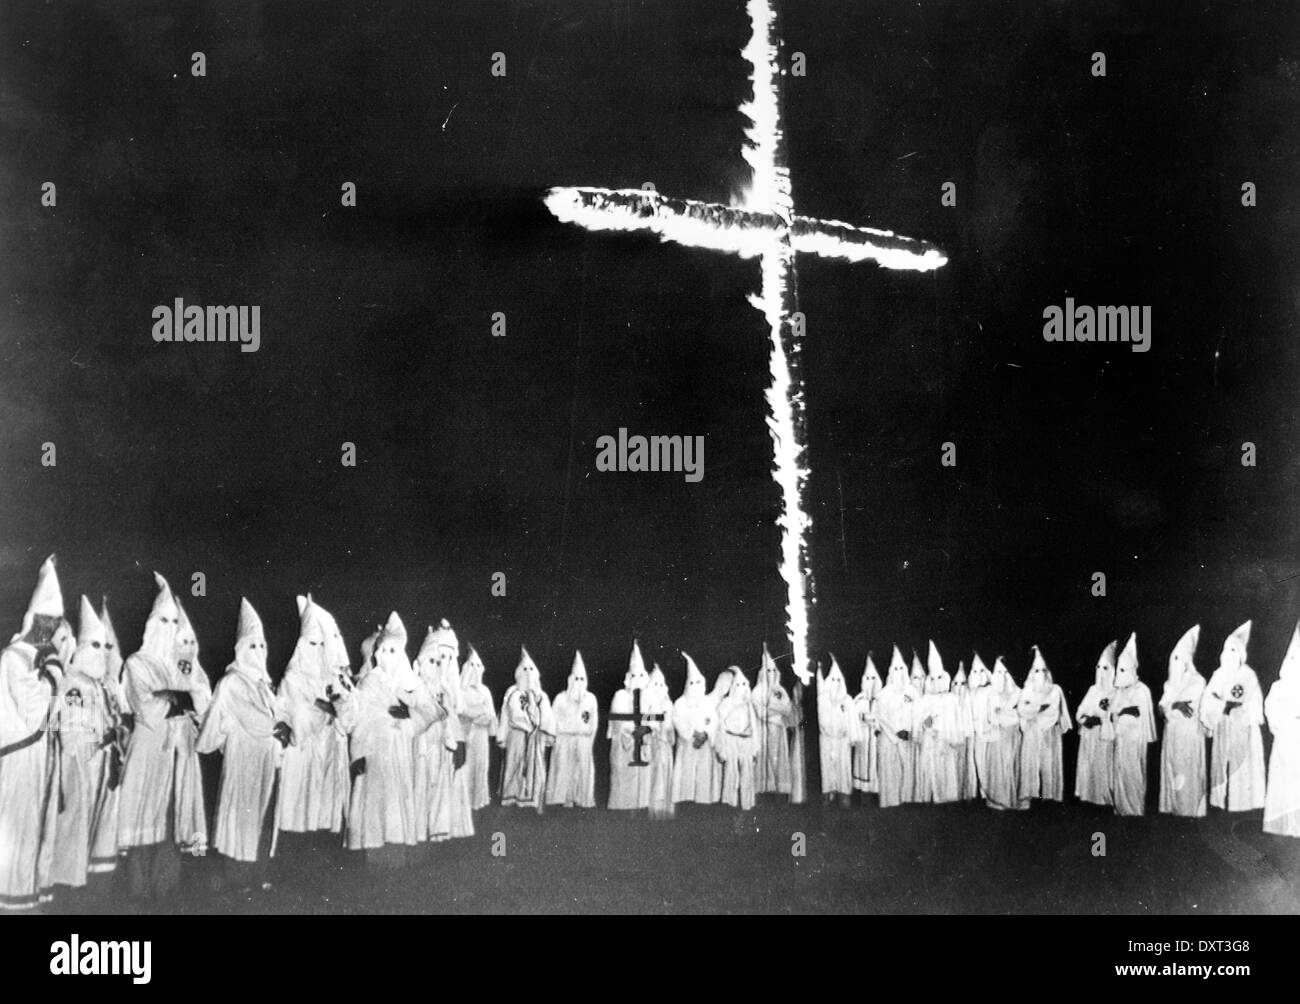 """the racial discrimination in the united states and the ku klux klan Members and supporters of the ku klux klan spoke at a rally the organization   analysis: in an america deeply divided, hate incidents appear to be  adl says  has """"a consistent record of racism, anti-semitism and bigotry."""